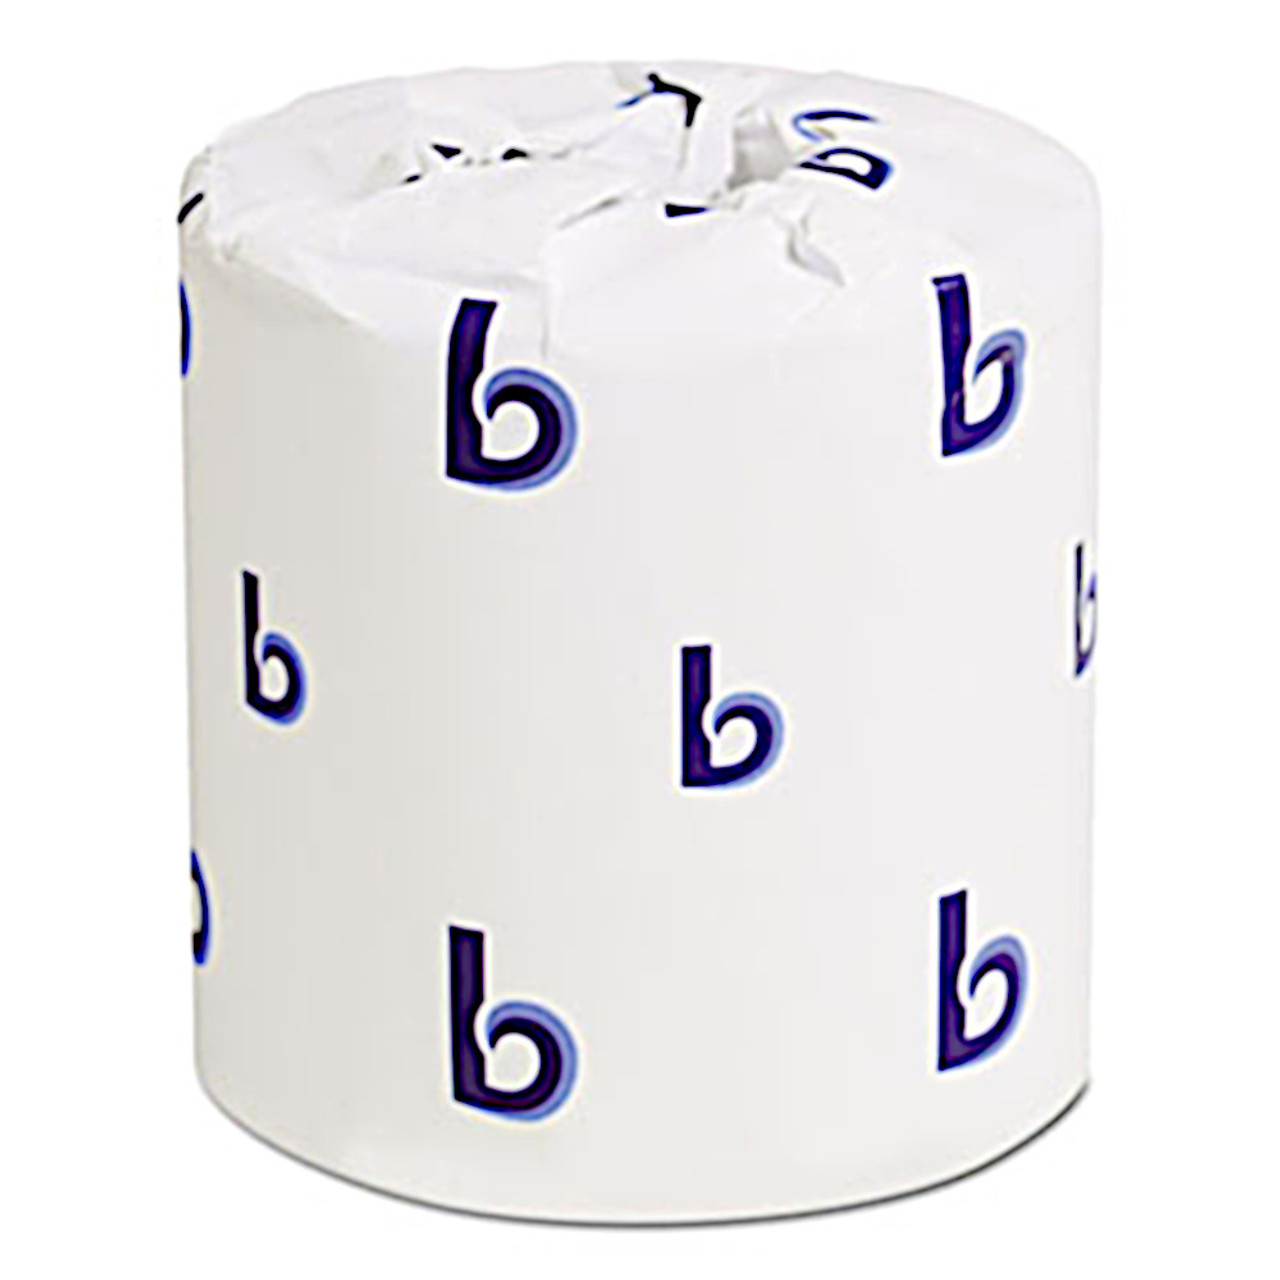 A good standard toilet paper individually wrapped 96 rolls/case.